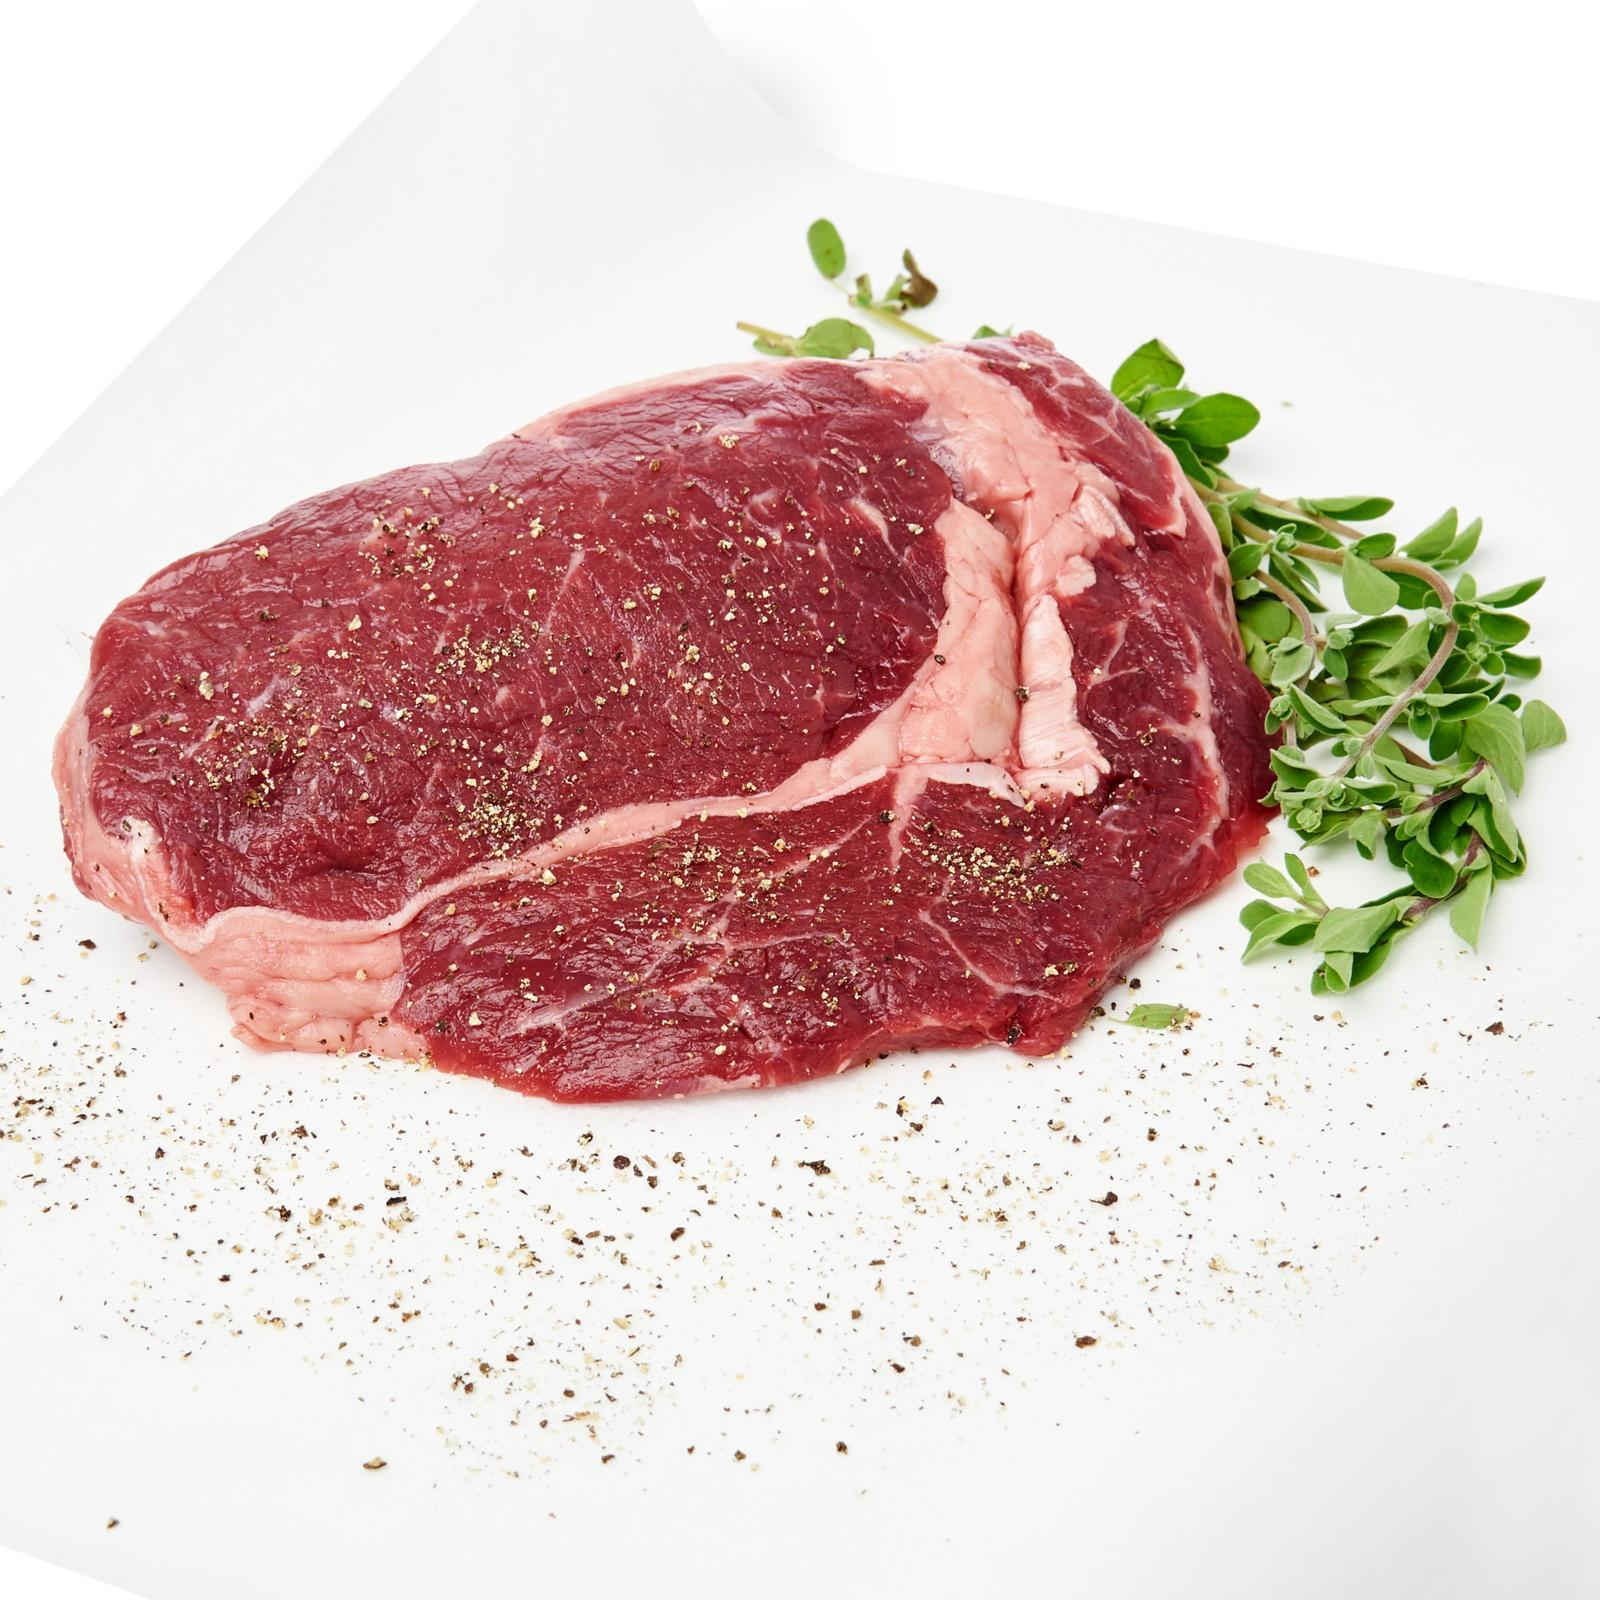 Zac Meat Grass Fed Angus Ribeye - New Zealand By Redmart.